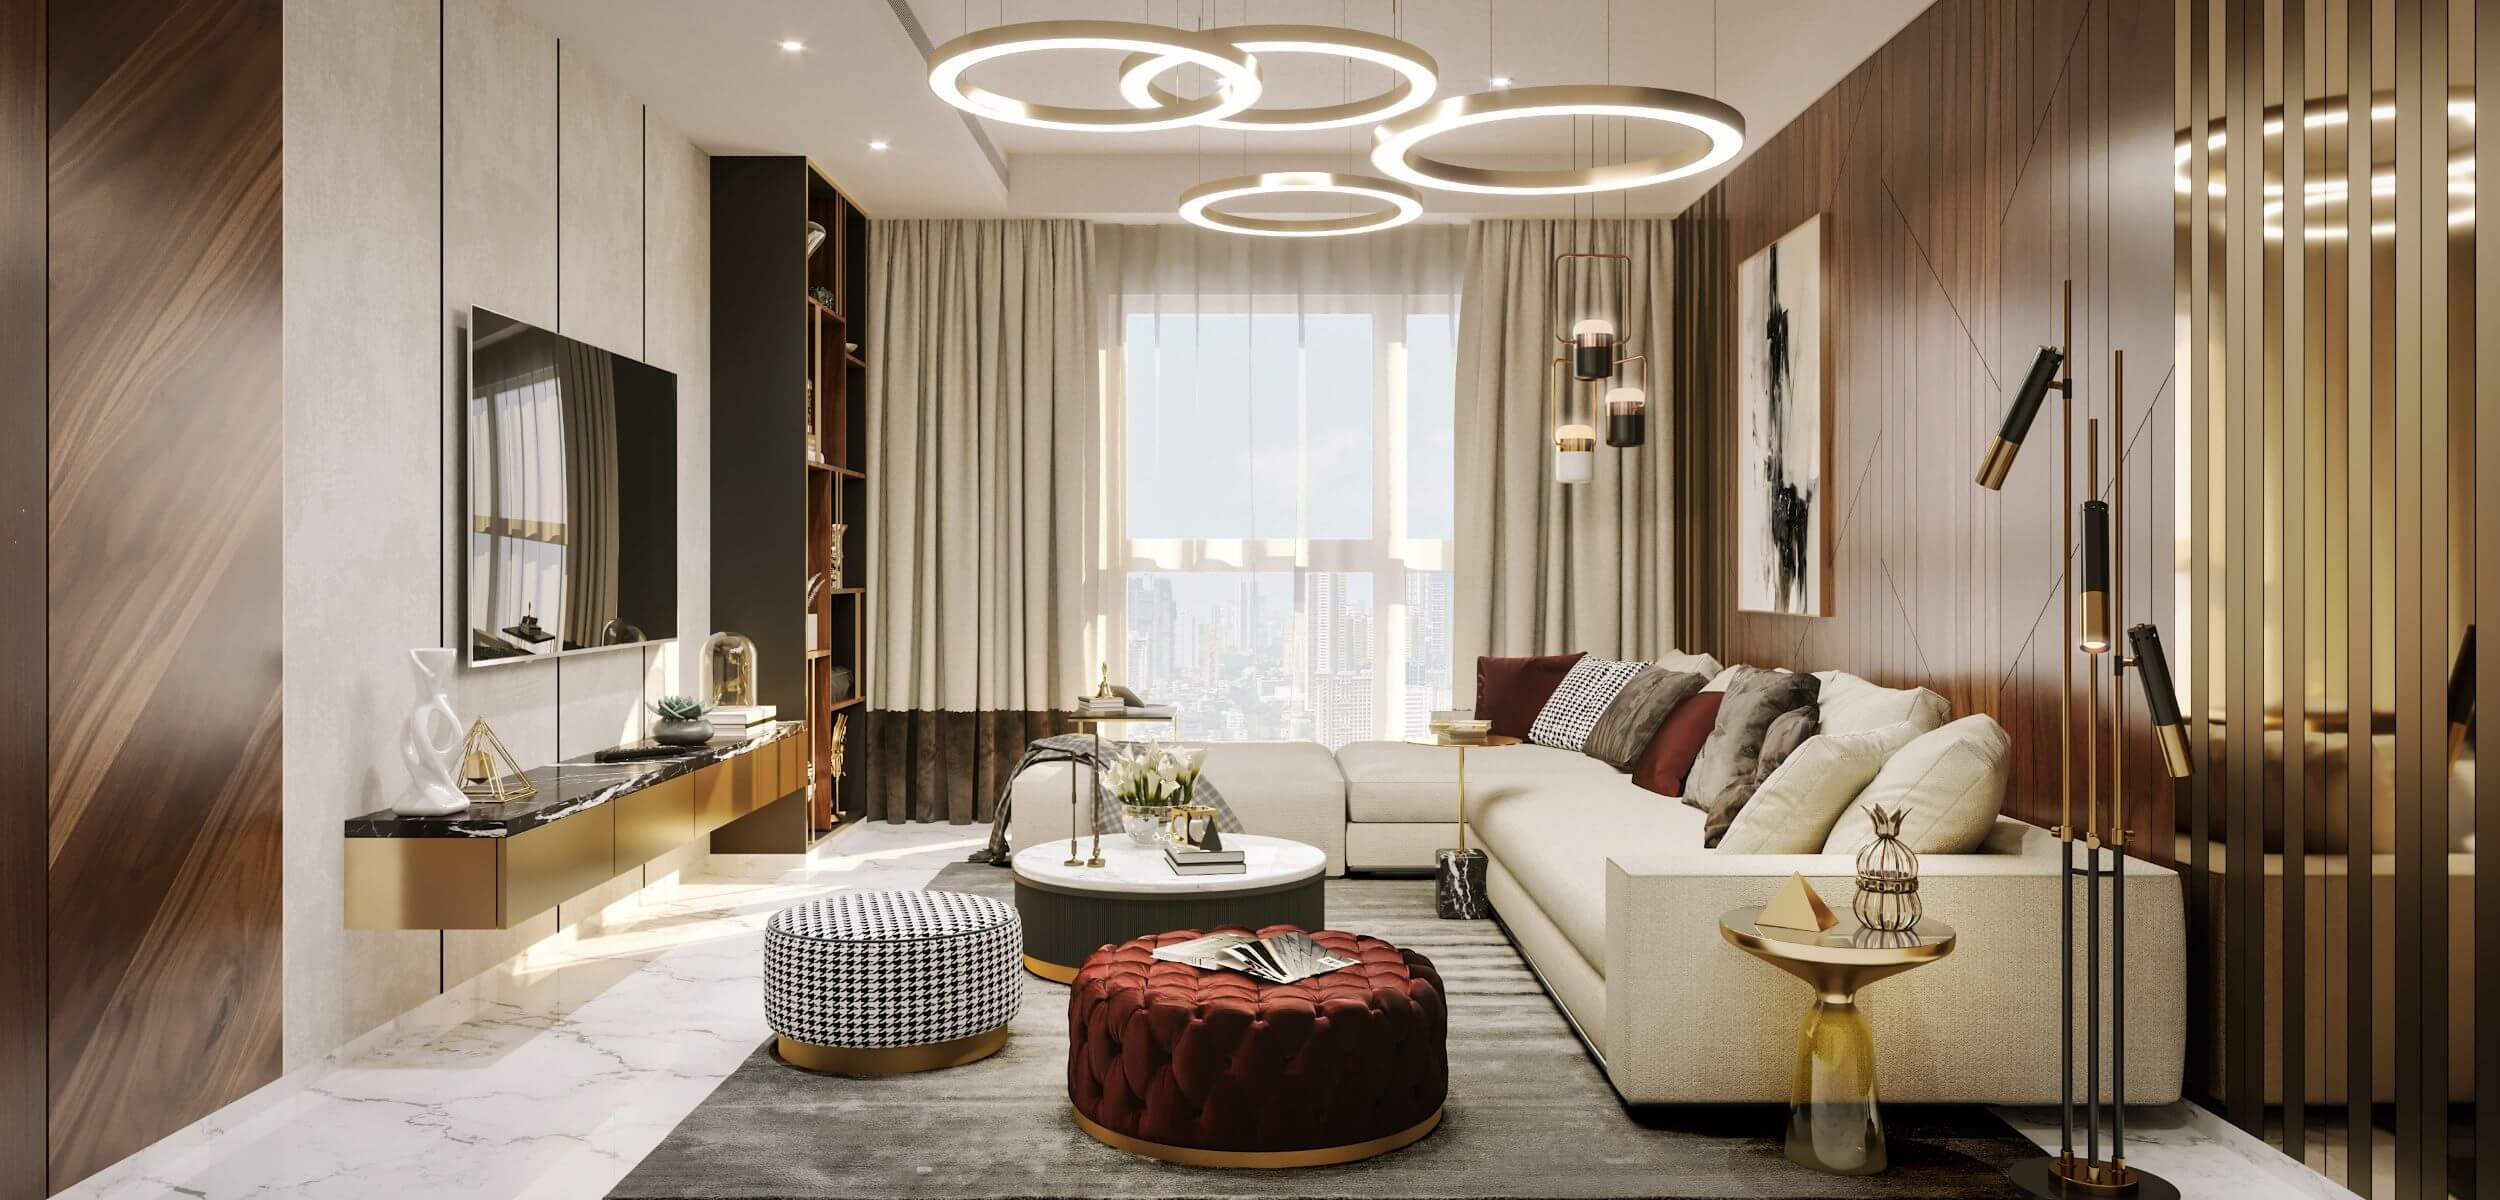 Make Your Space Graceful Through Admirable Interior Designs